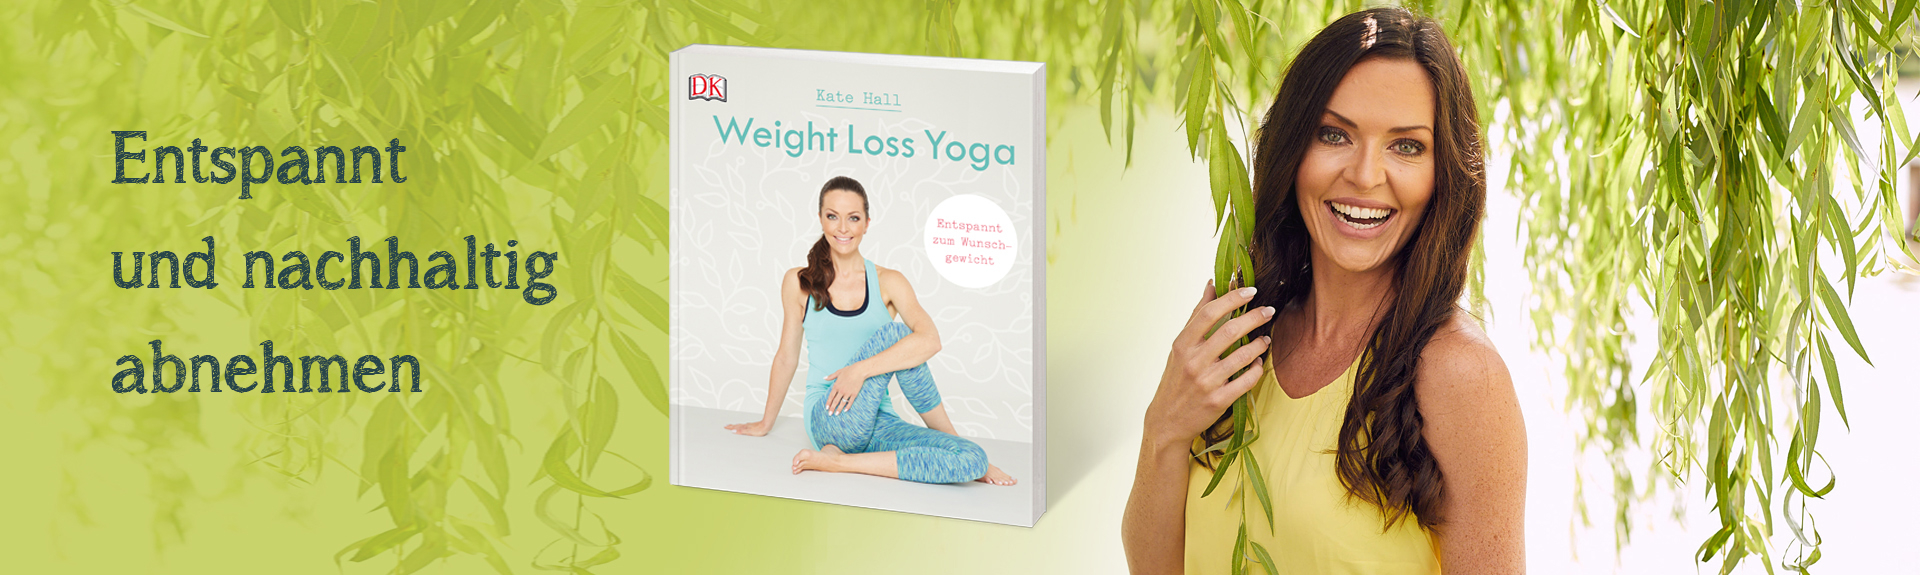 Kate Hall - Weight Loss Yoga